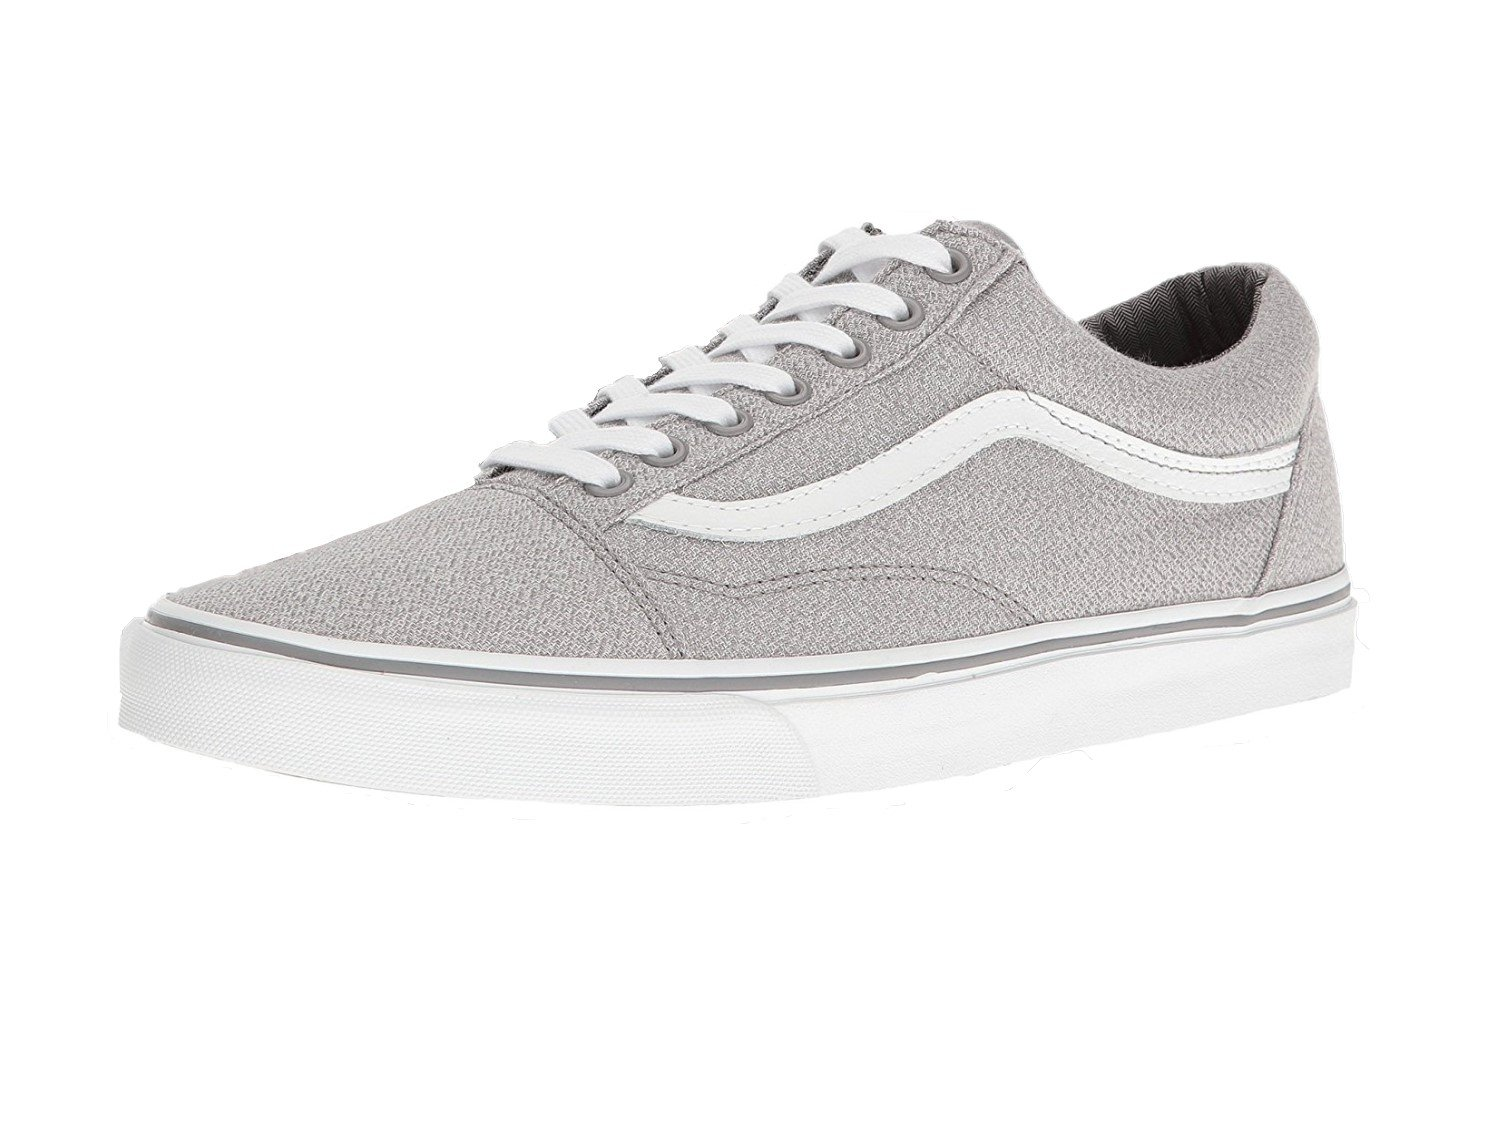 0995789e5c Galleon - Vans Old Skool Skate Shoe (7.5 D(M) US Mens  9.0 B(M) US Womens